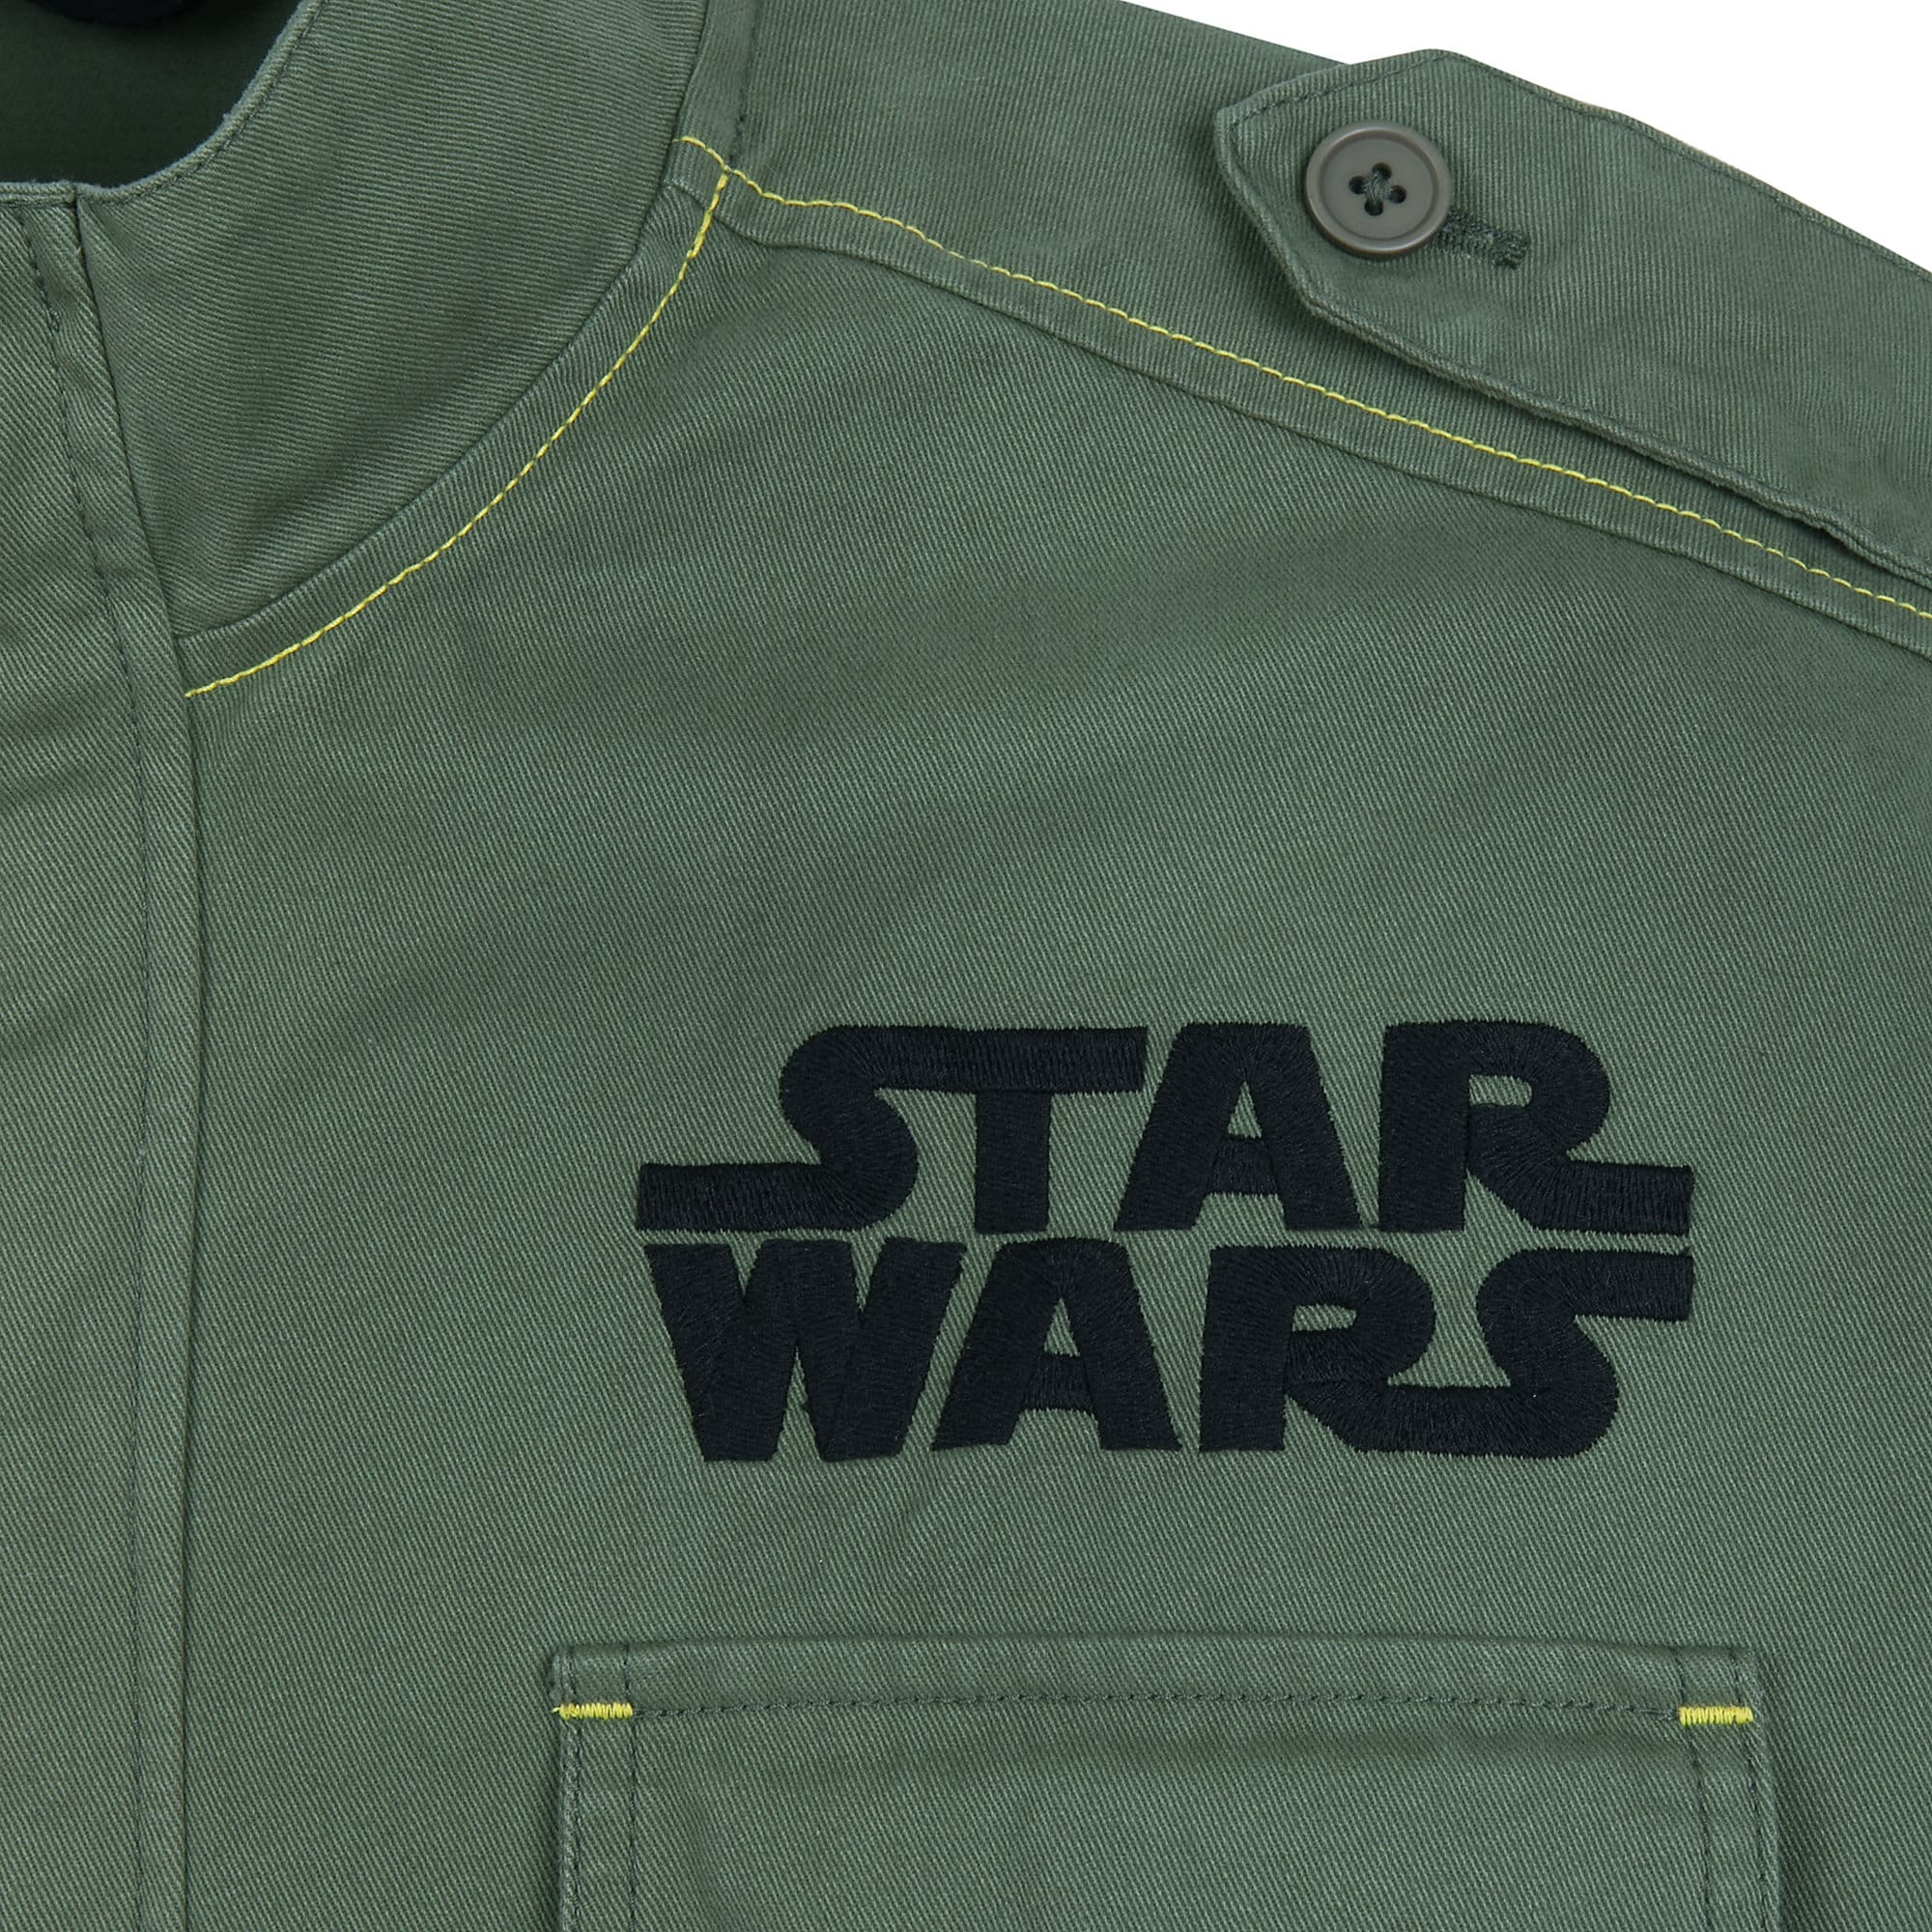 f4e8fec3293 Boba Fett Military Jacket for Adults - Star Wars now available for ...